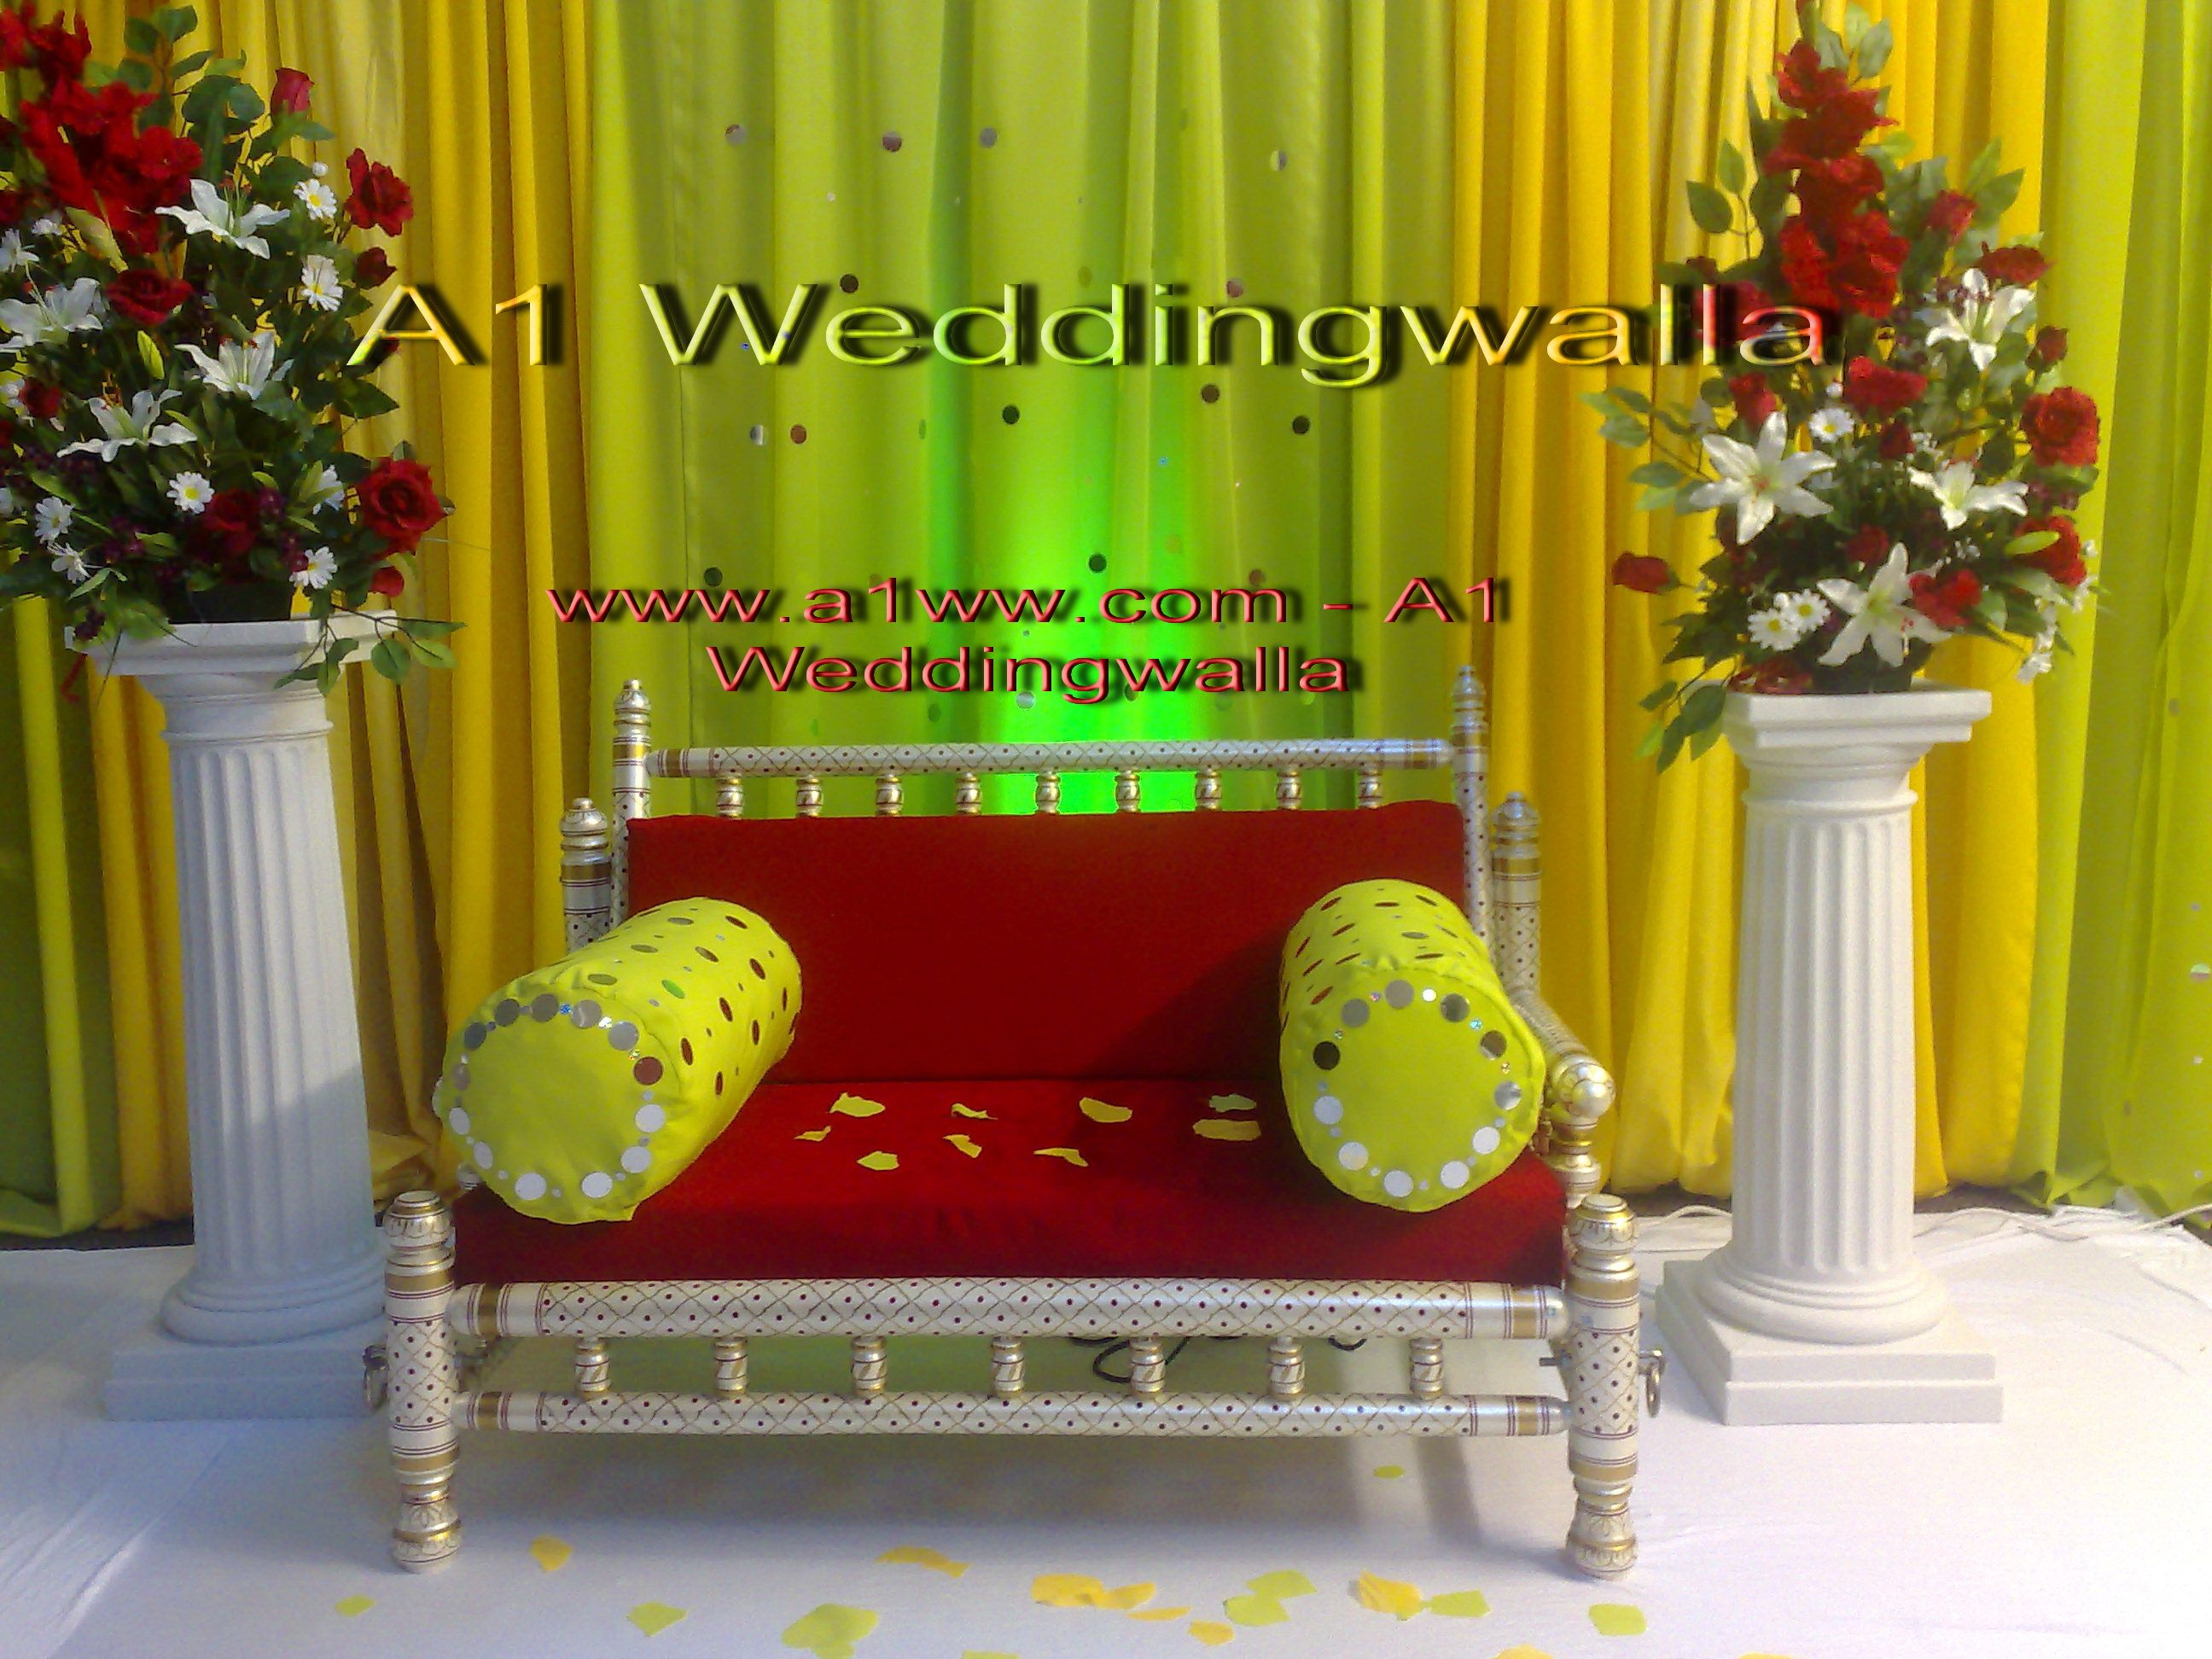 wedding stage decoration pics%0A New Post pakistani wedding stage simple   Weddings   Pinterest   Pakistani wedding  stage  Wedding stage and Wedding stage decorations